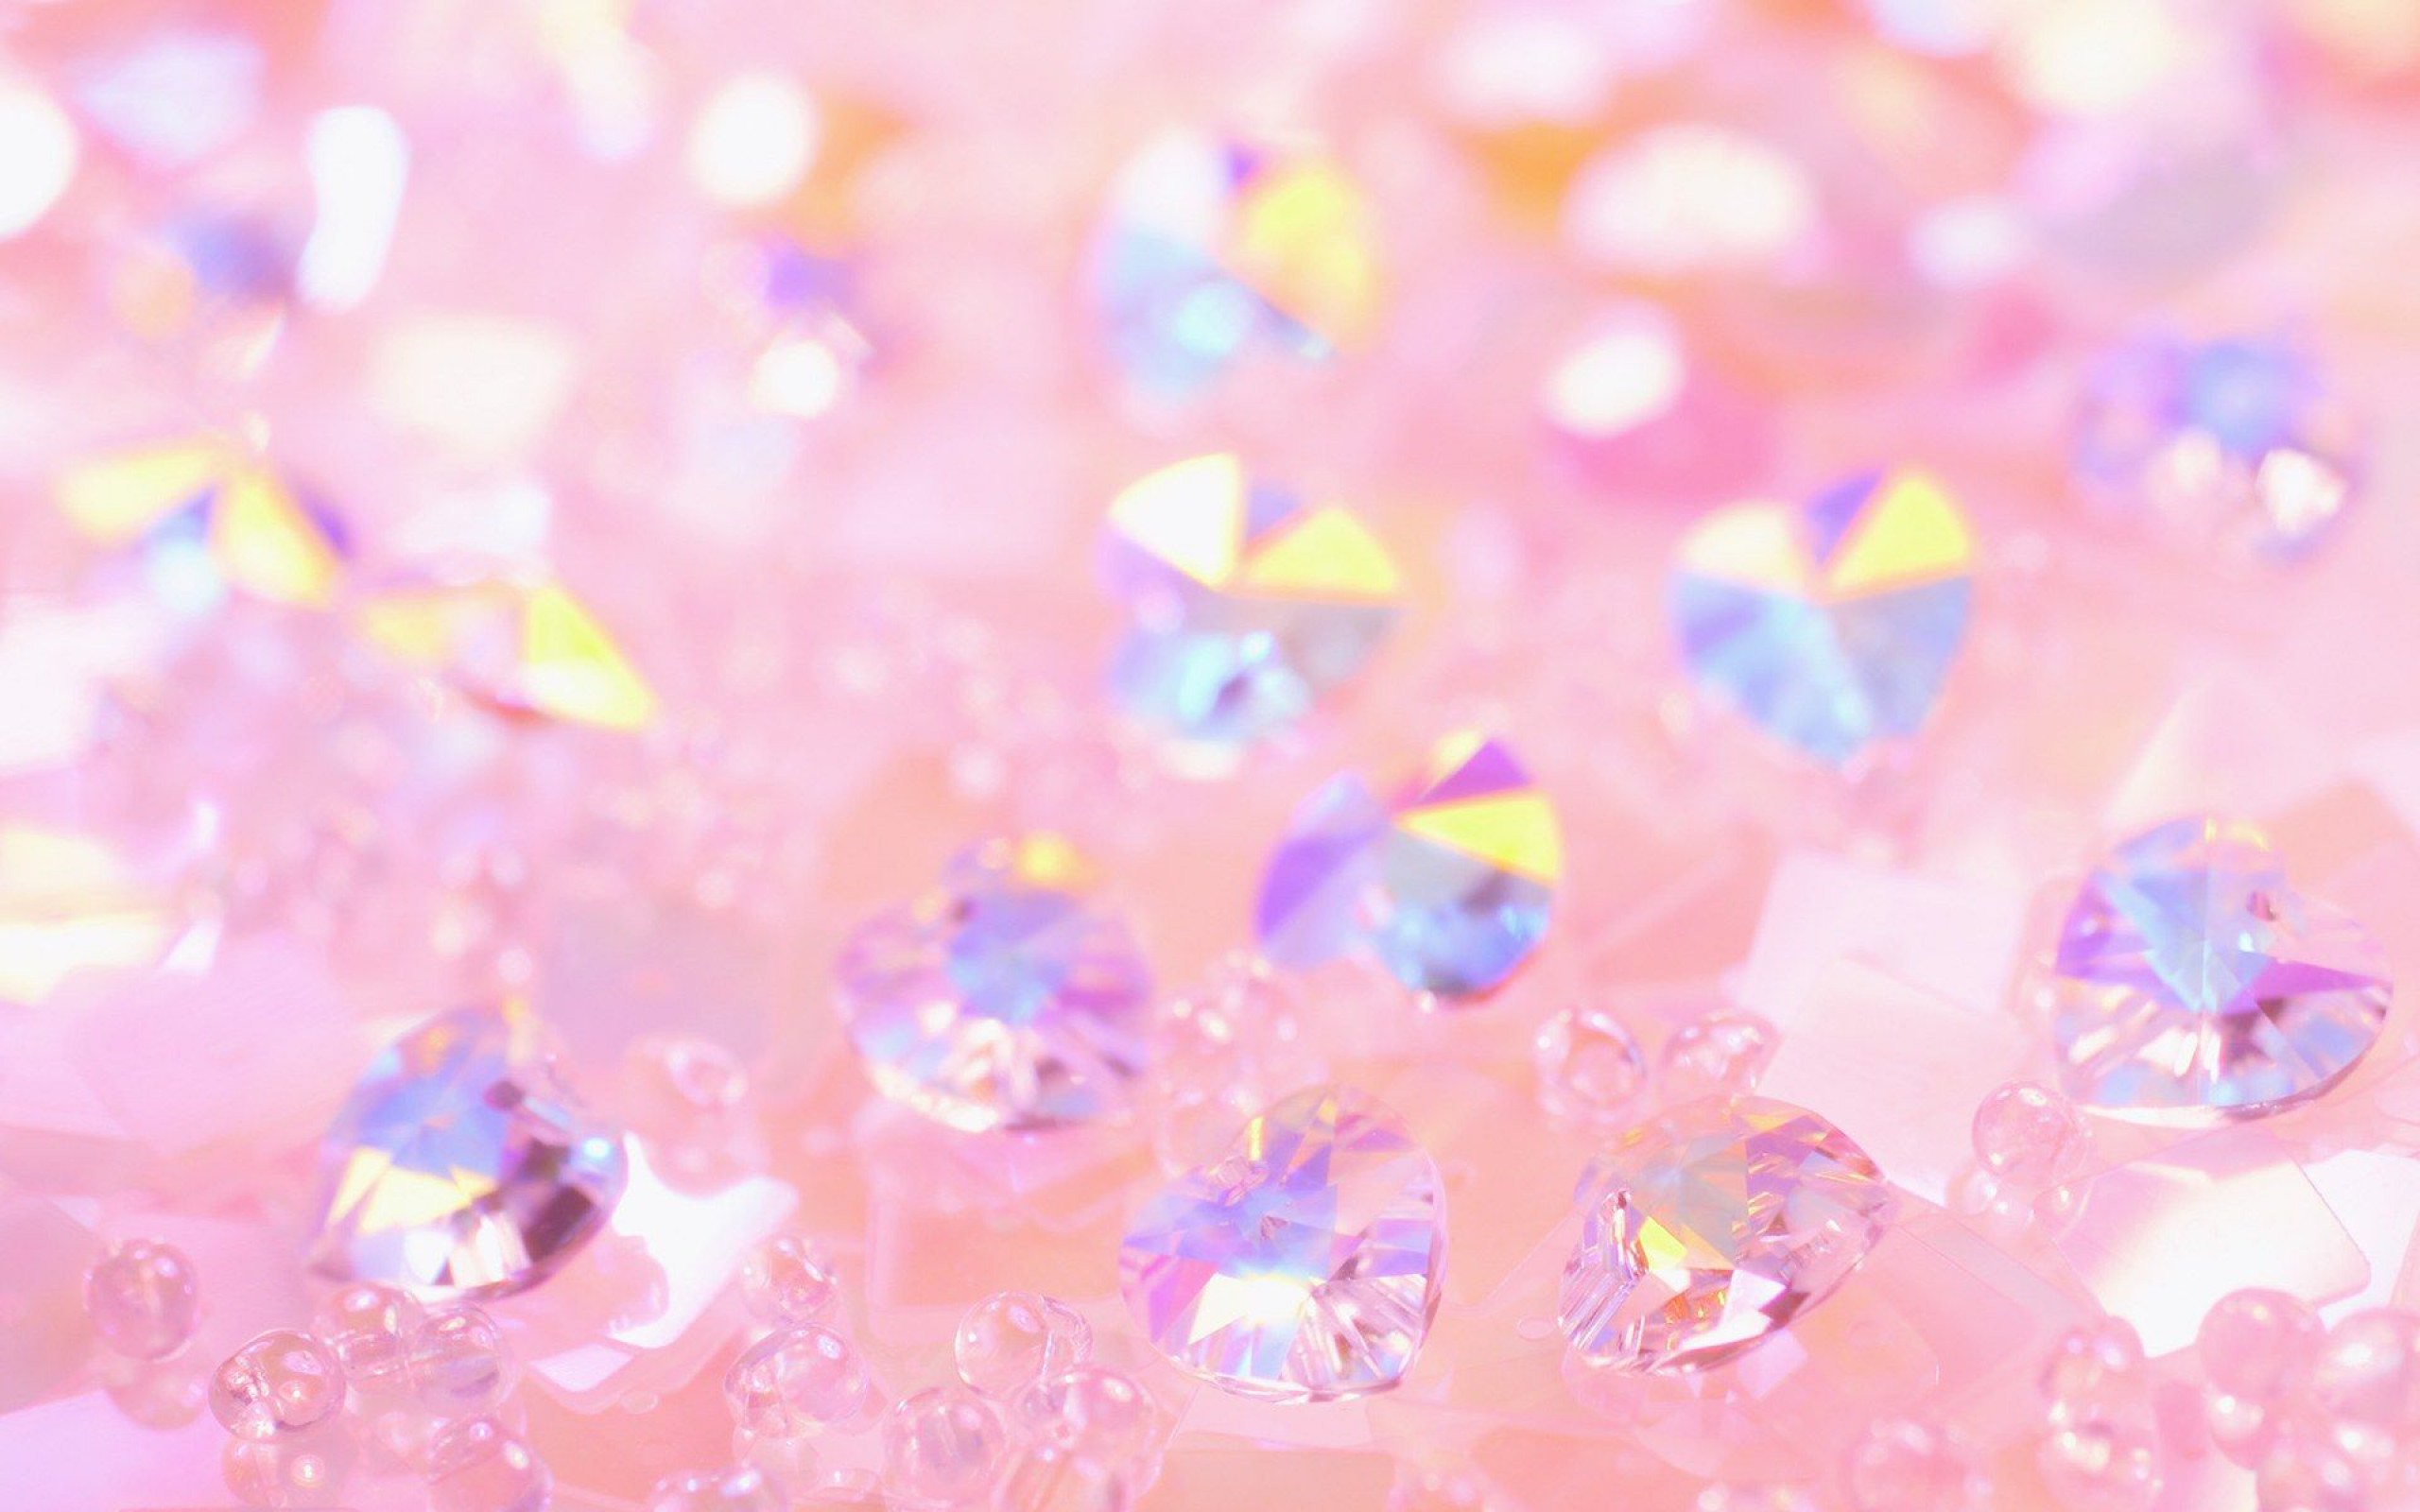 jewelry glitter wallpaper - photo #6